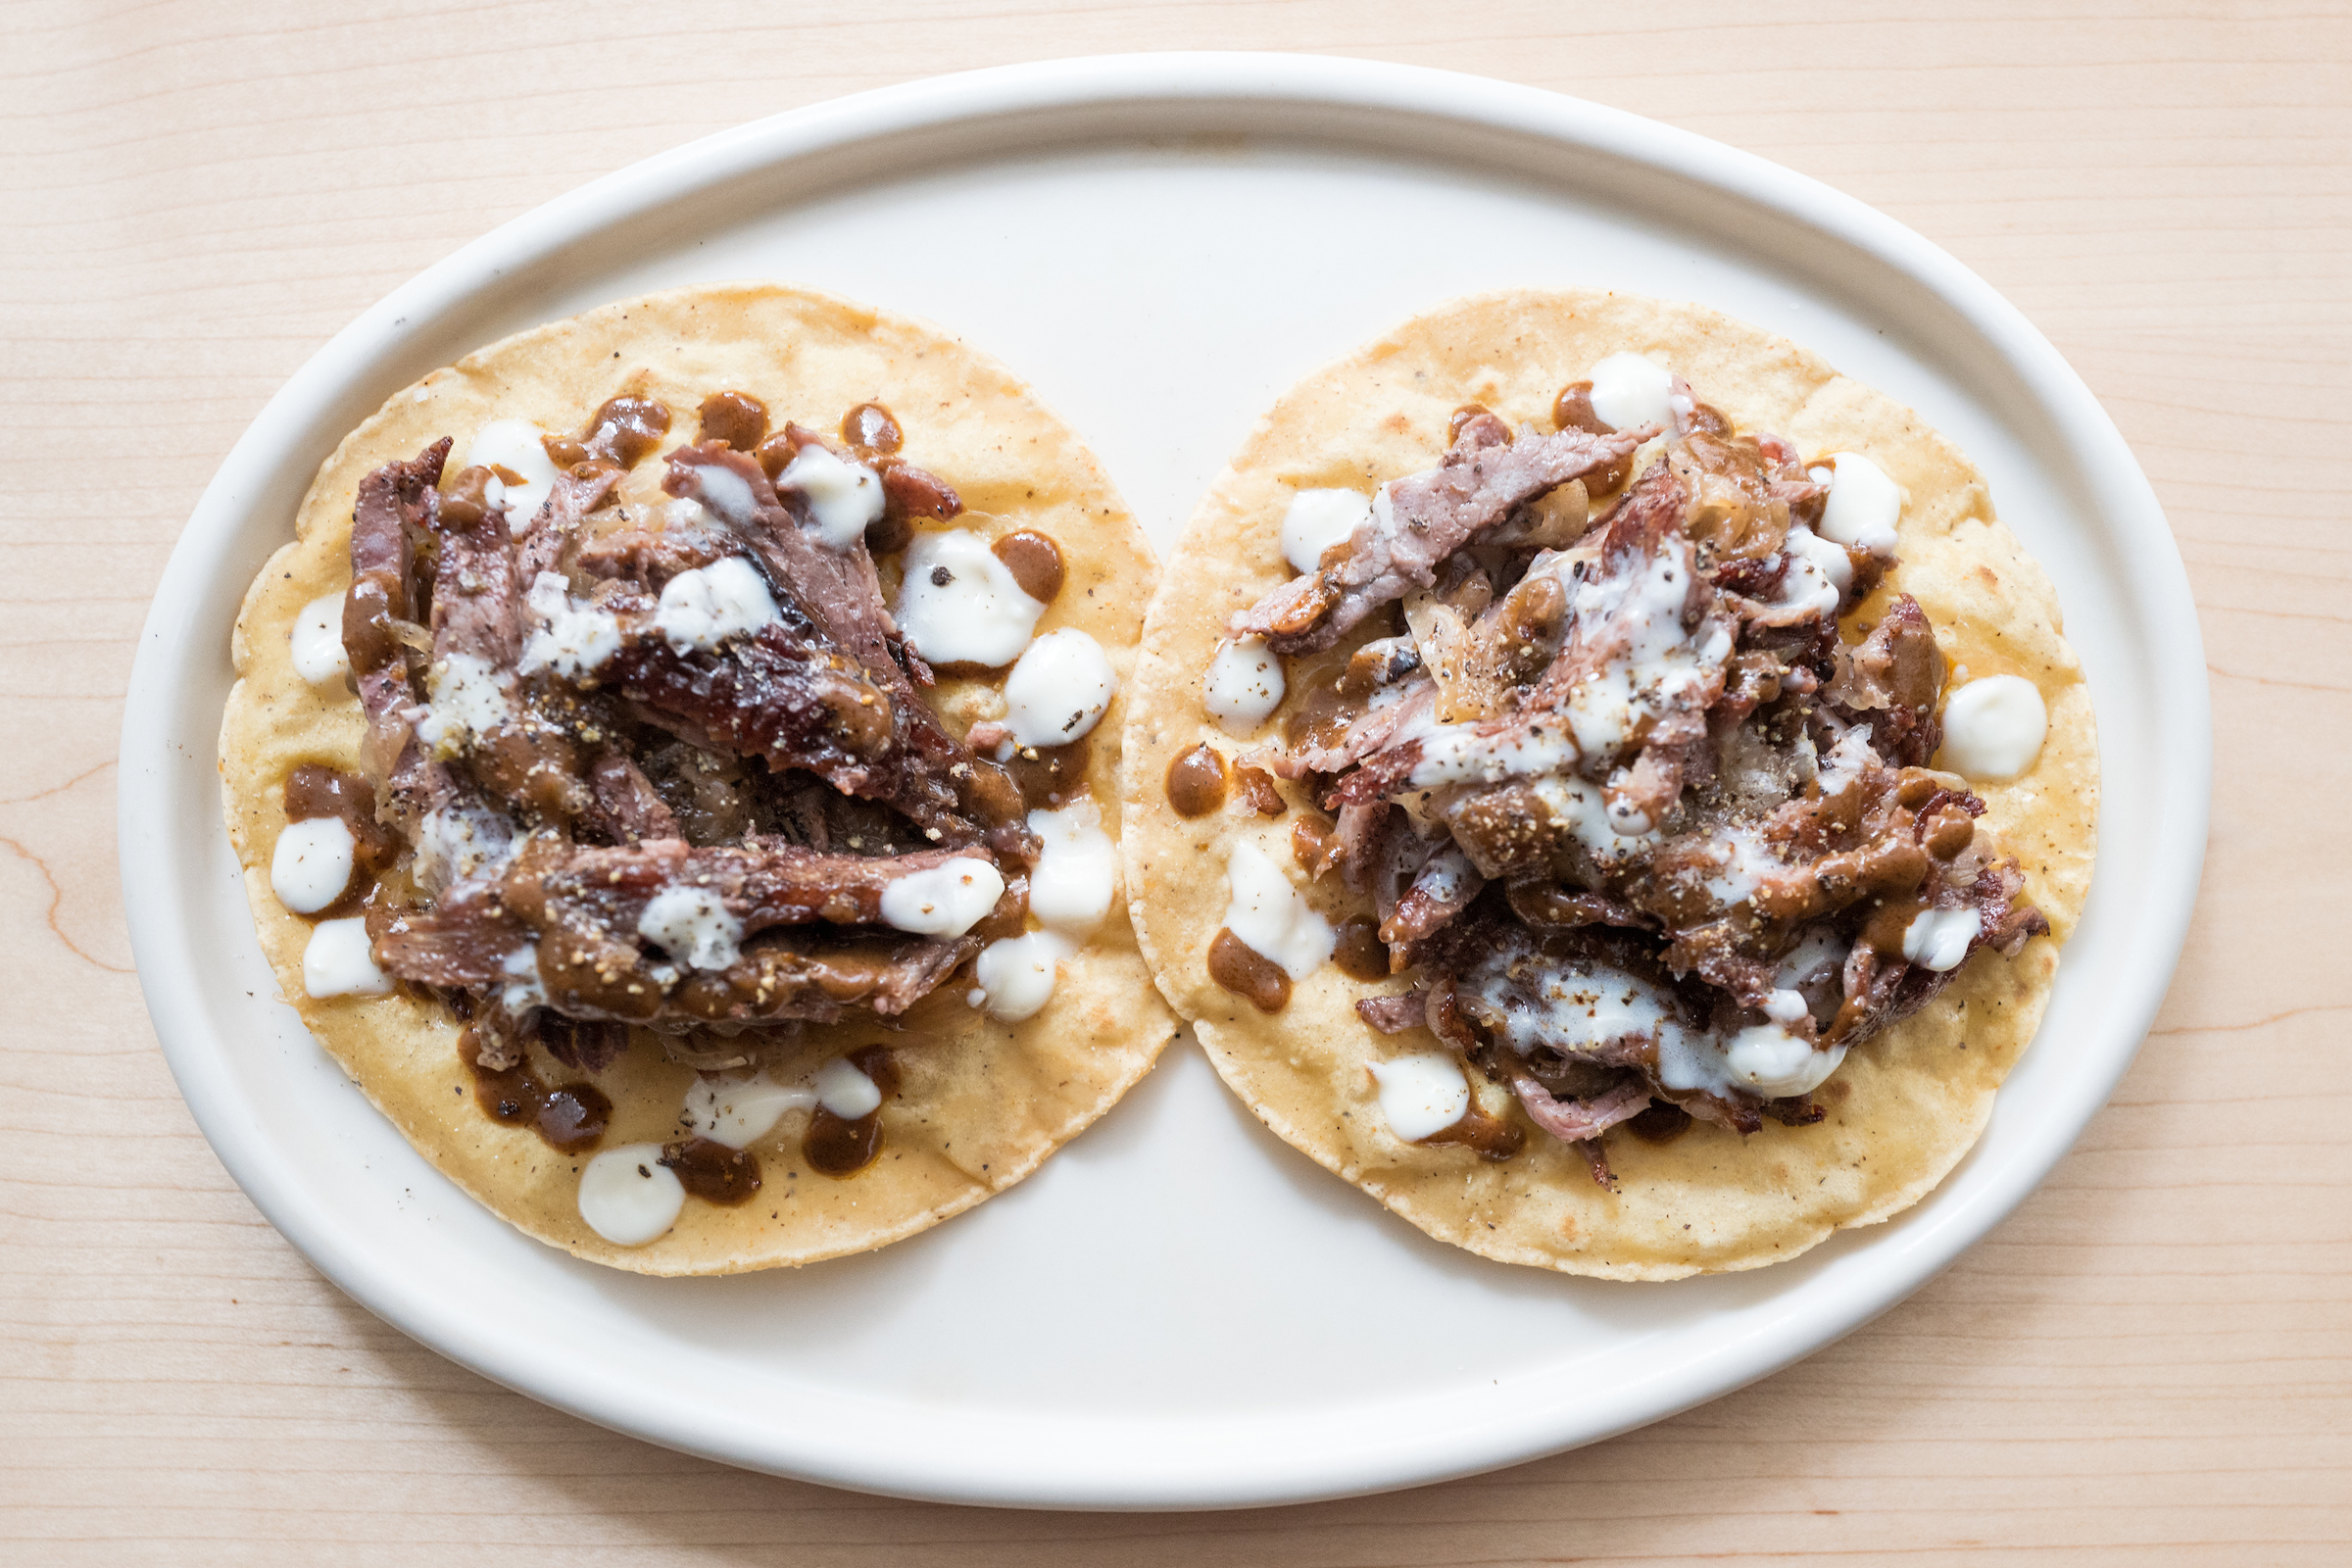 Two tacos with meat and toppings displayed on a white plate on a cream background.